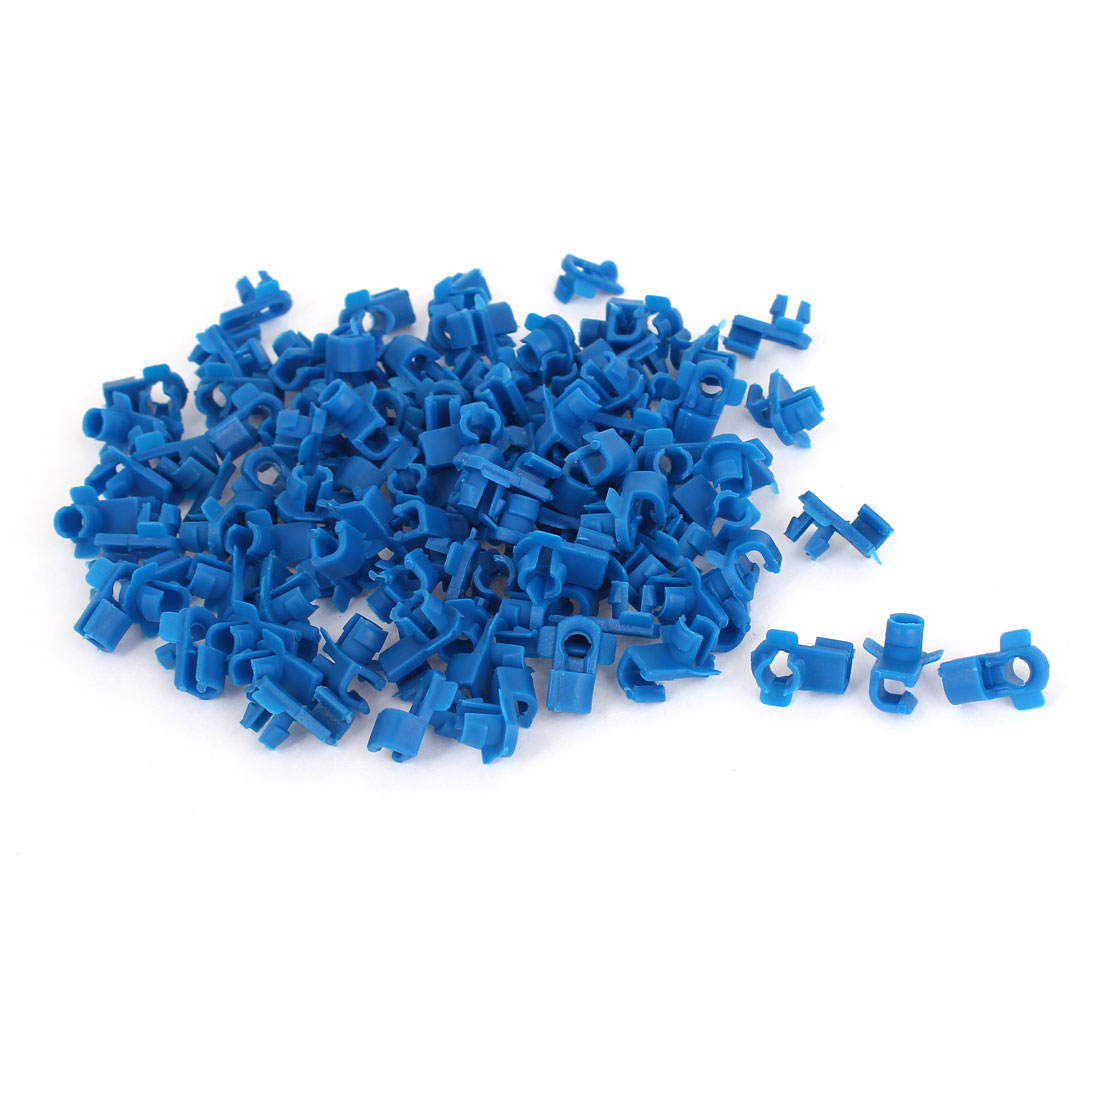 100 Pcs Blue Plastic Rivet Trim Fastener Moulding Clips for 4mm Hole